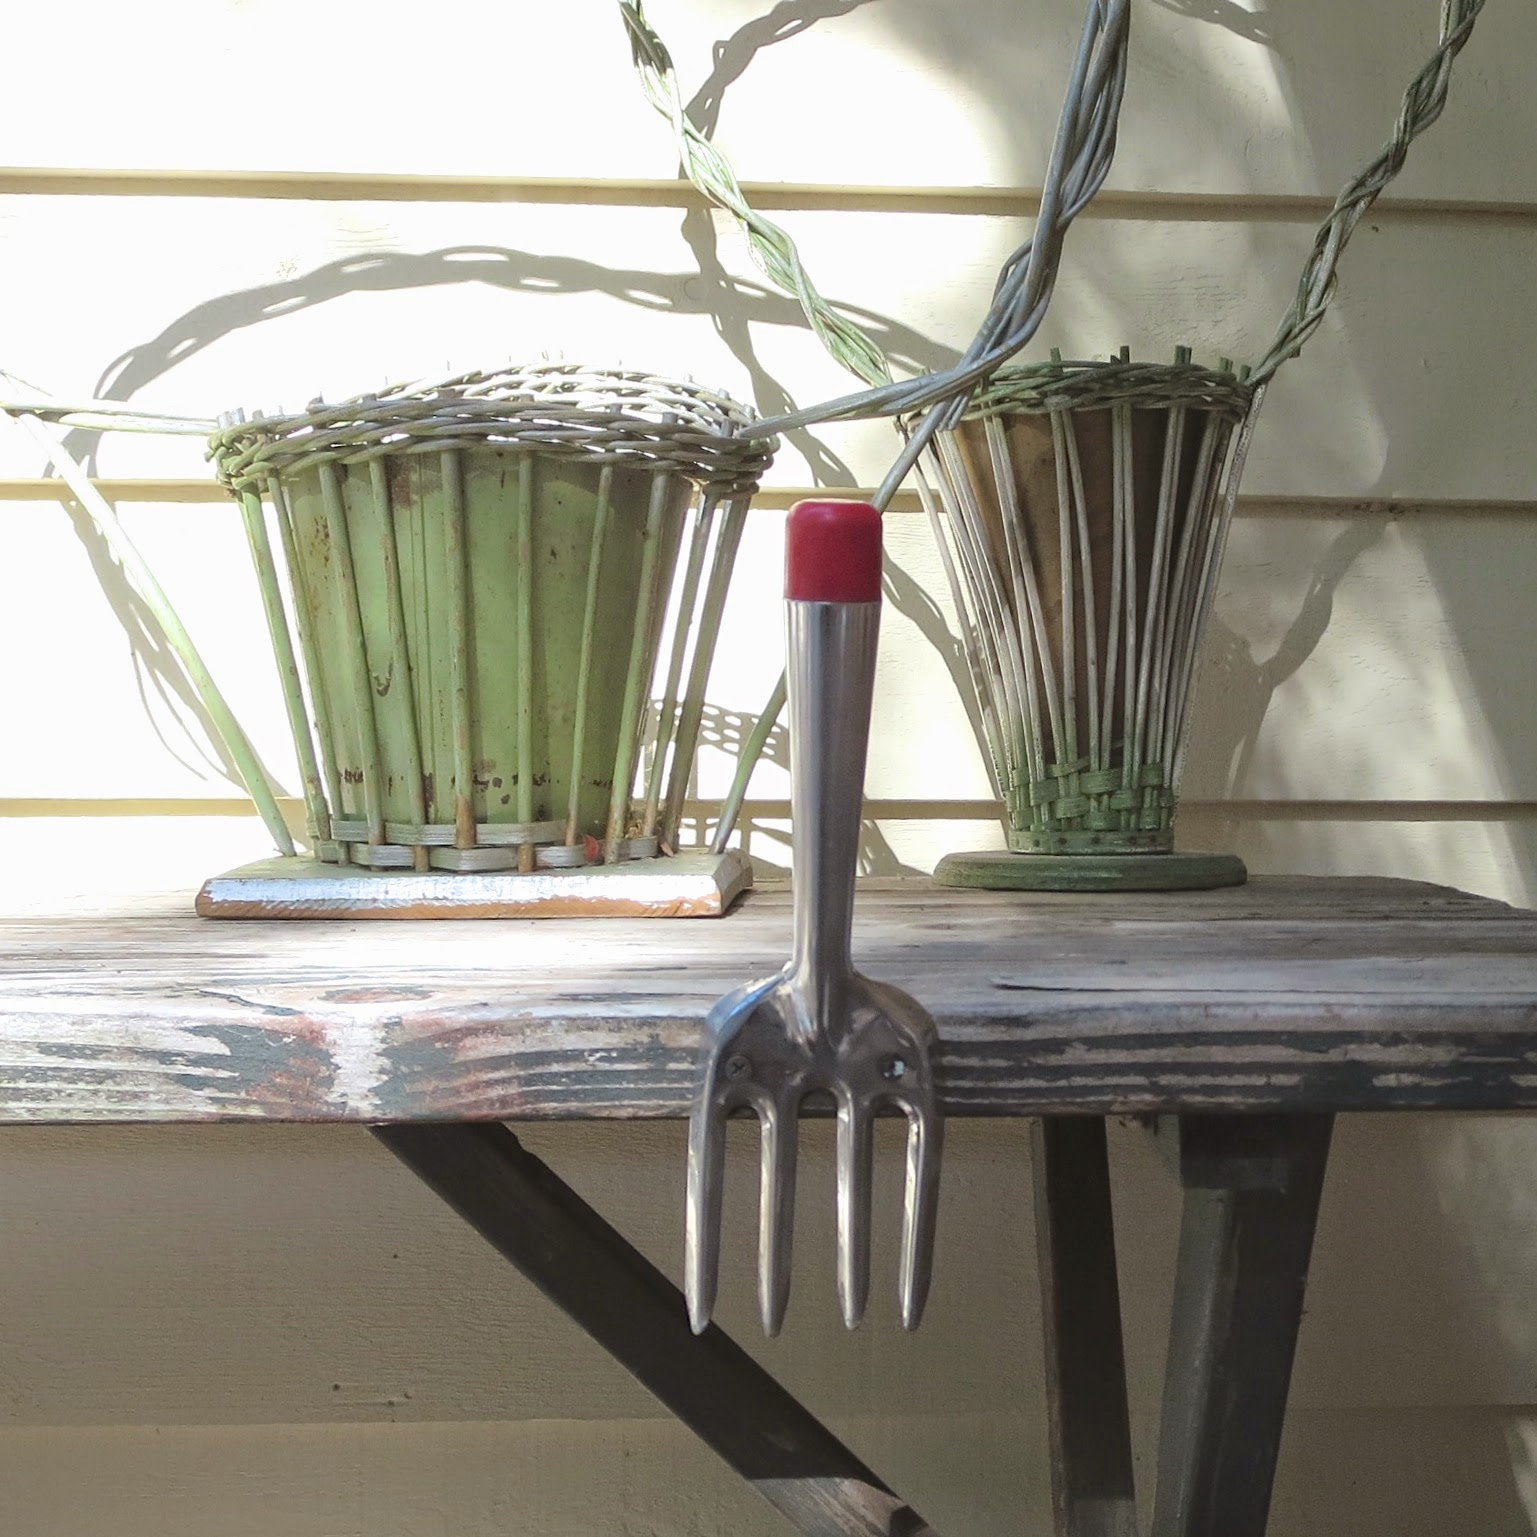 Garden Hose Solutions: Anything Goes Here: Diy Garden Hose Holder. A Simple